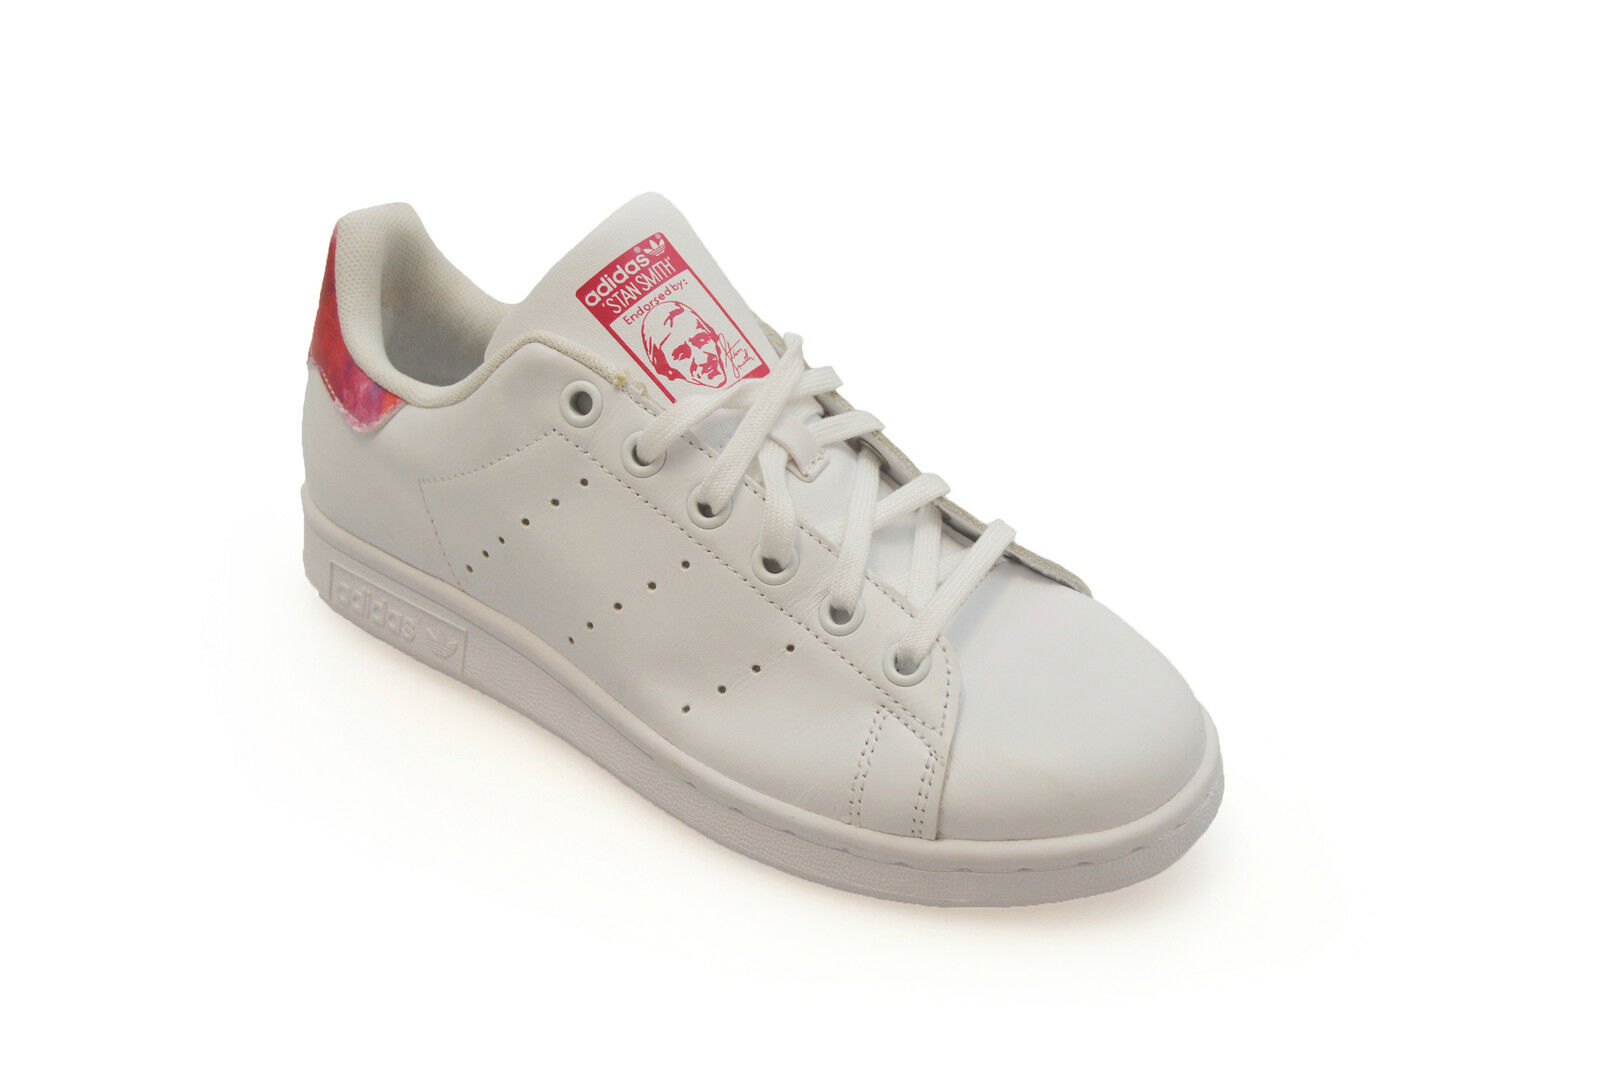 Damen Adidas Stan Smith W - weiß-orange s81873 - weiß-orange - Turnschuhe 0d7c9d